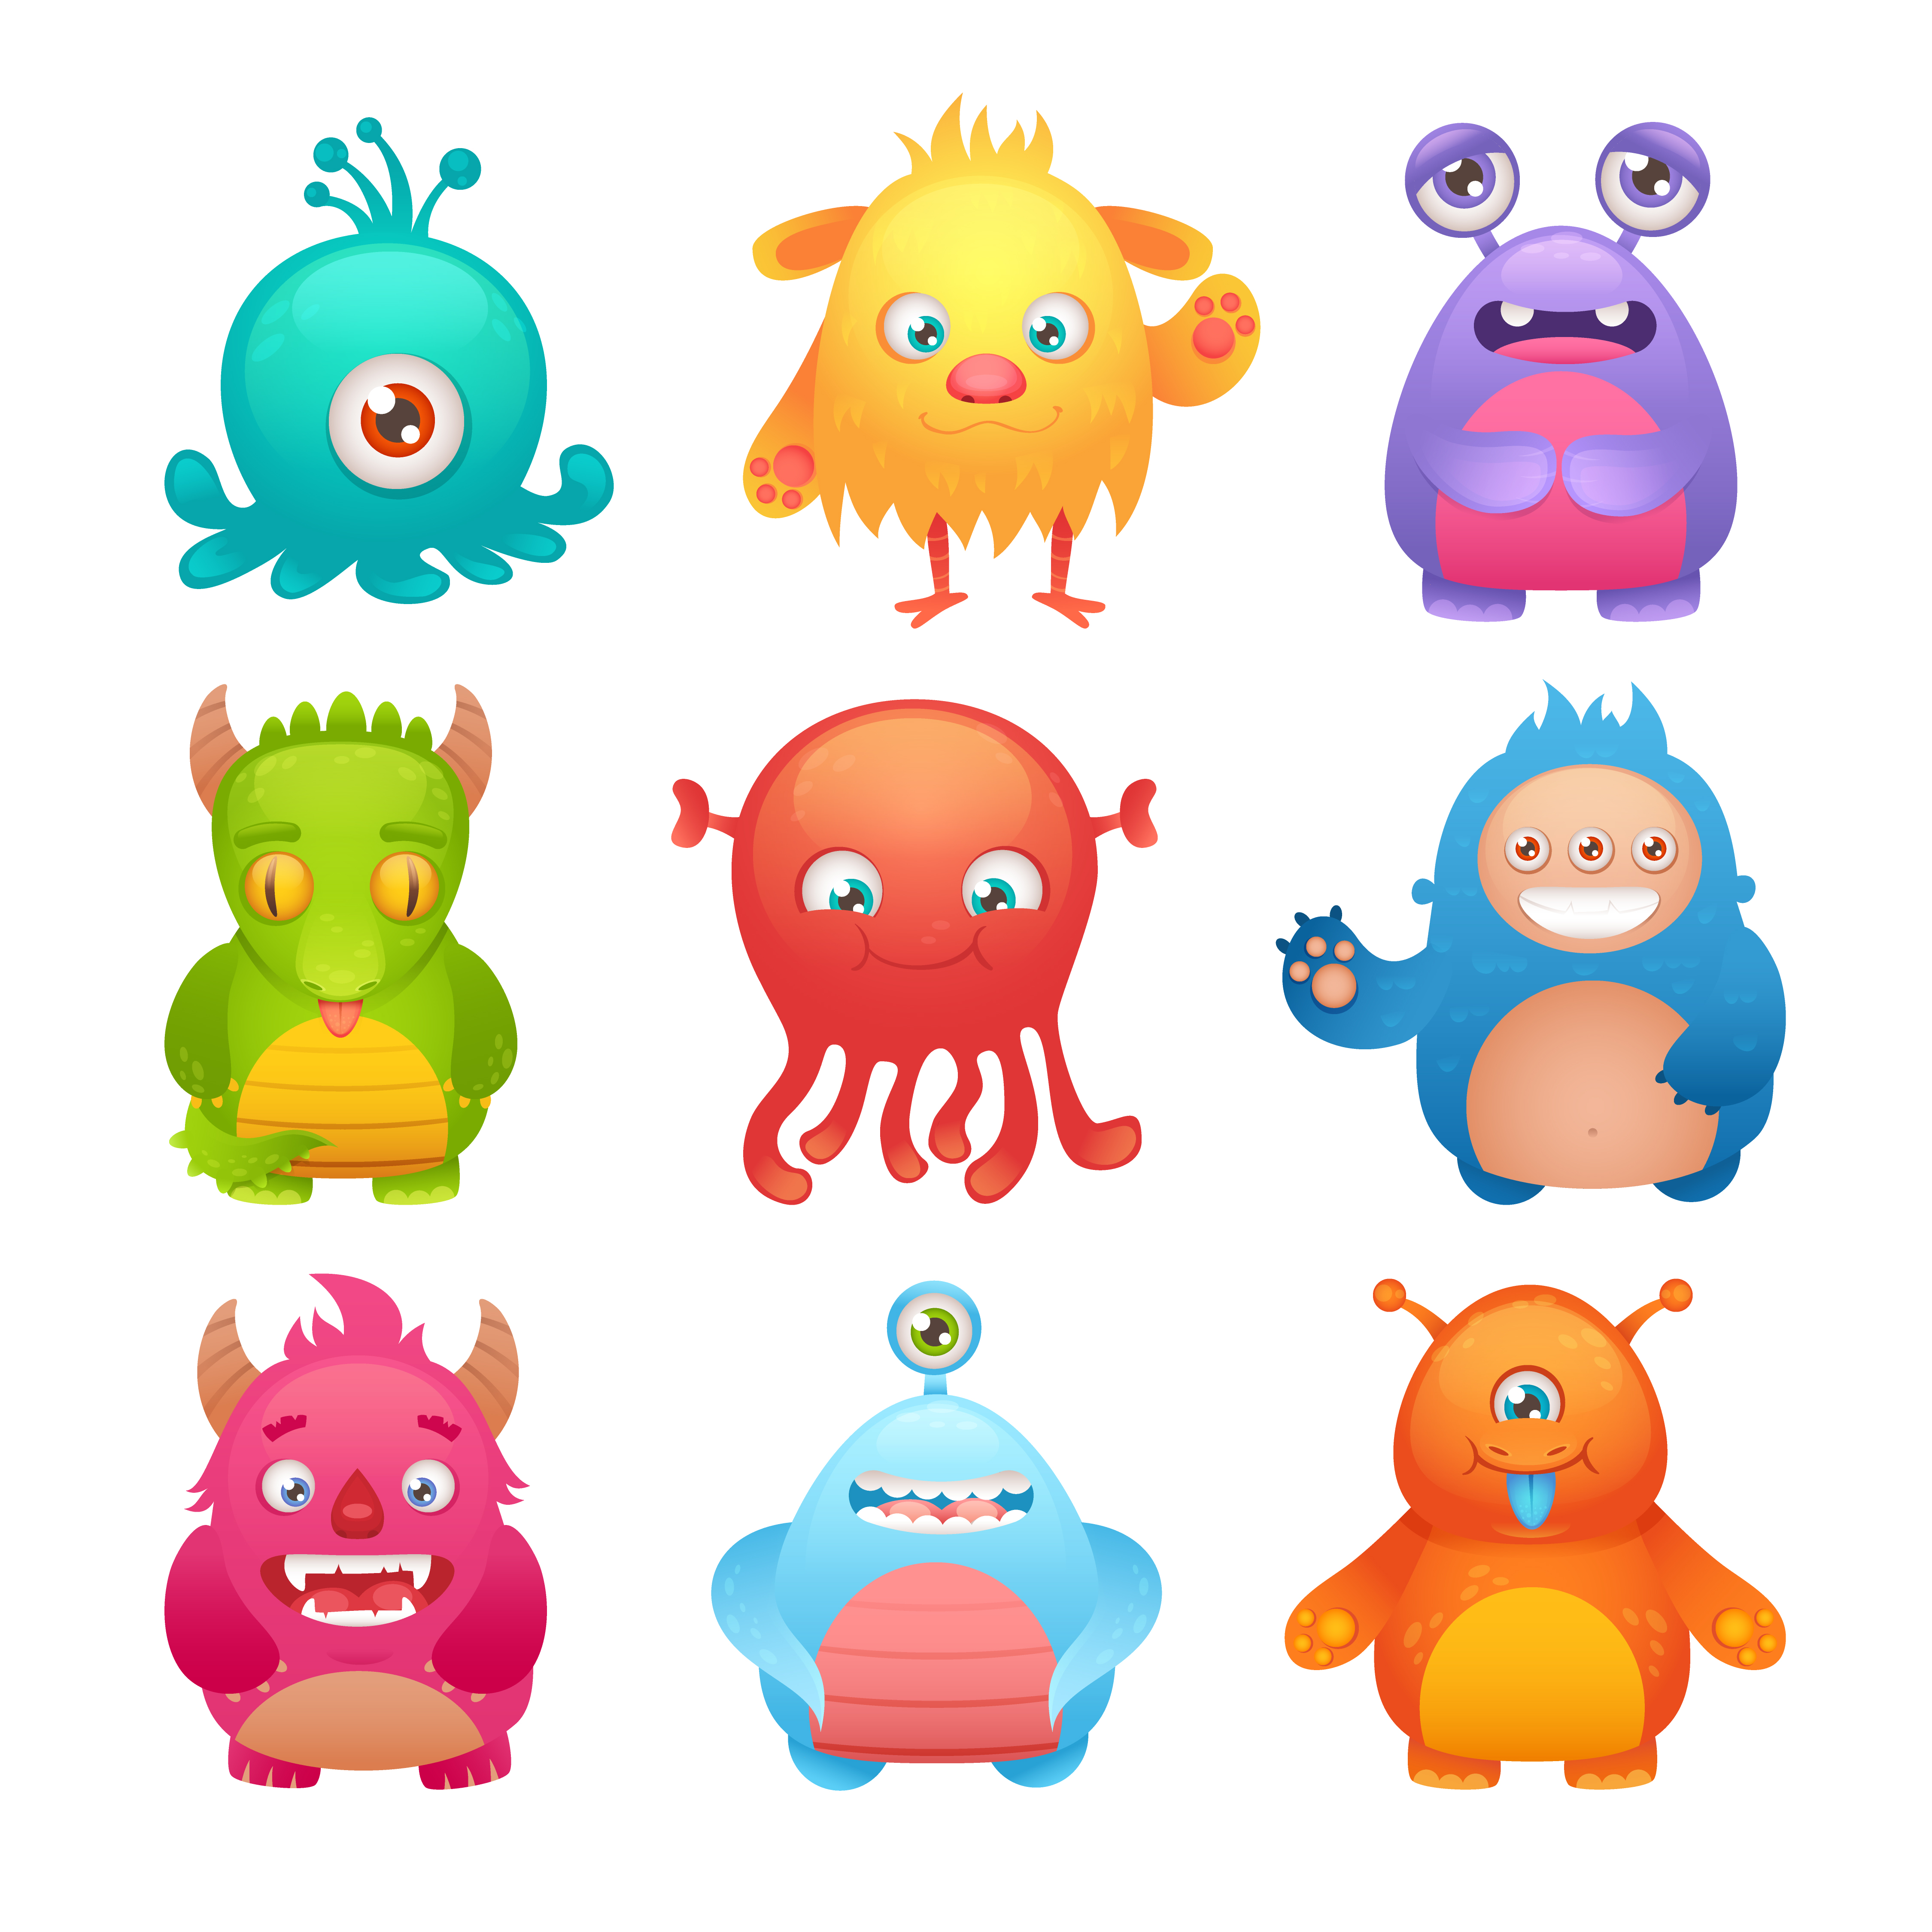 monsters cute cartoon alien vector funny illustration monster aliens character characters icons isolated clipart vectors drawing scary premium flat clip